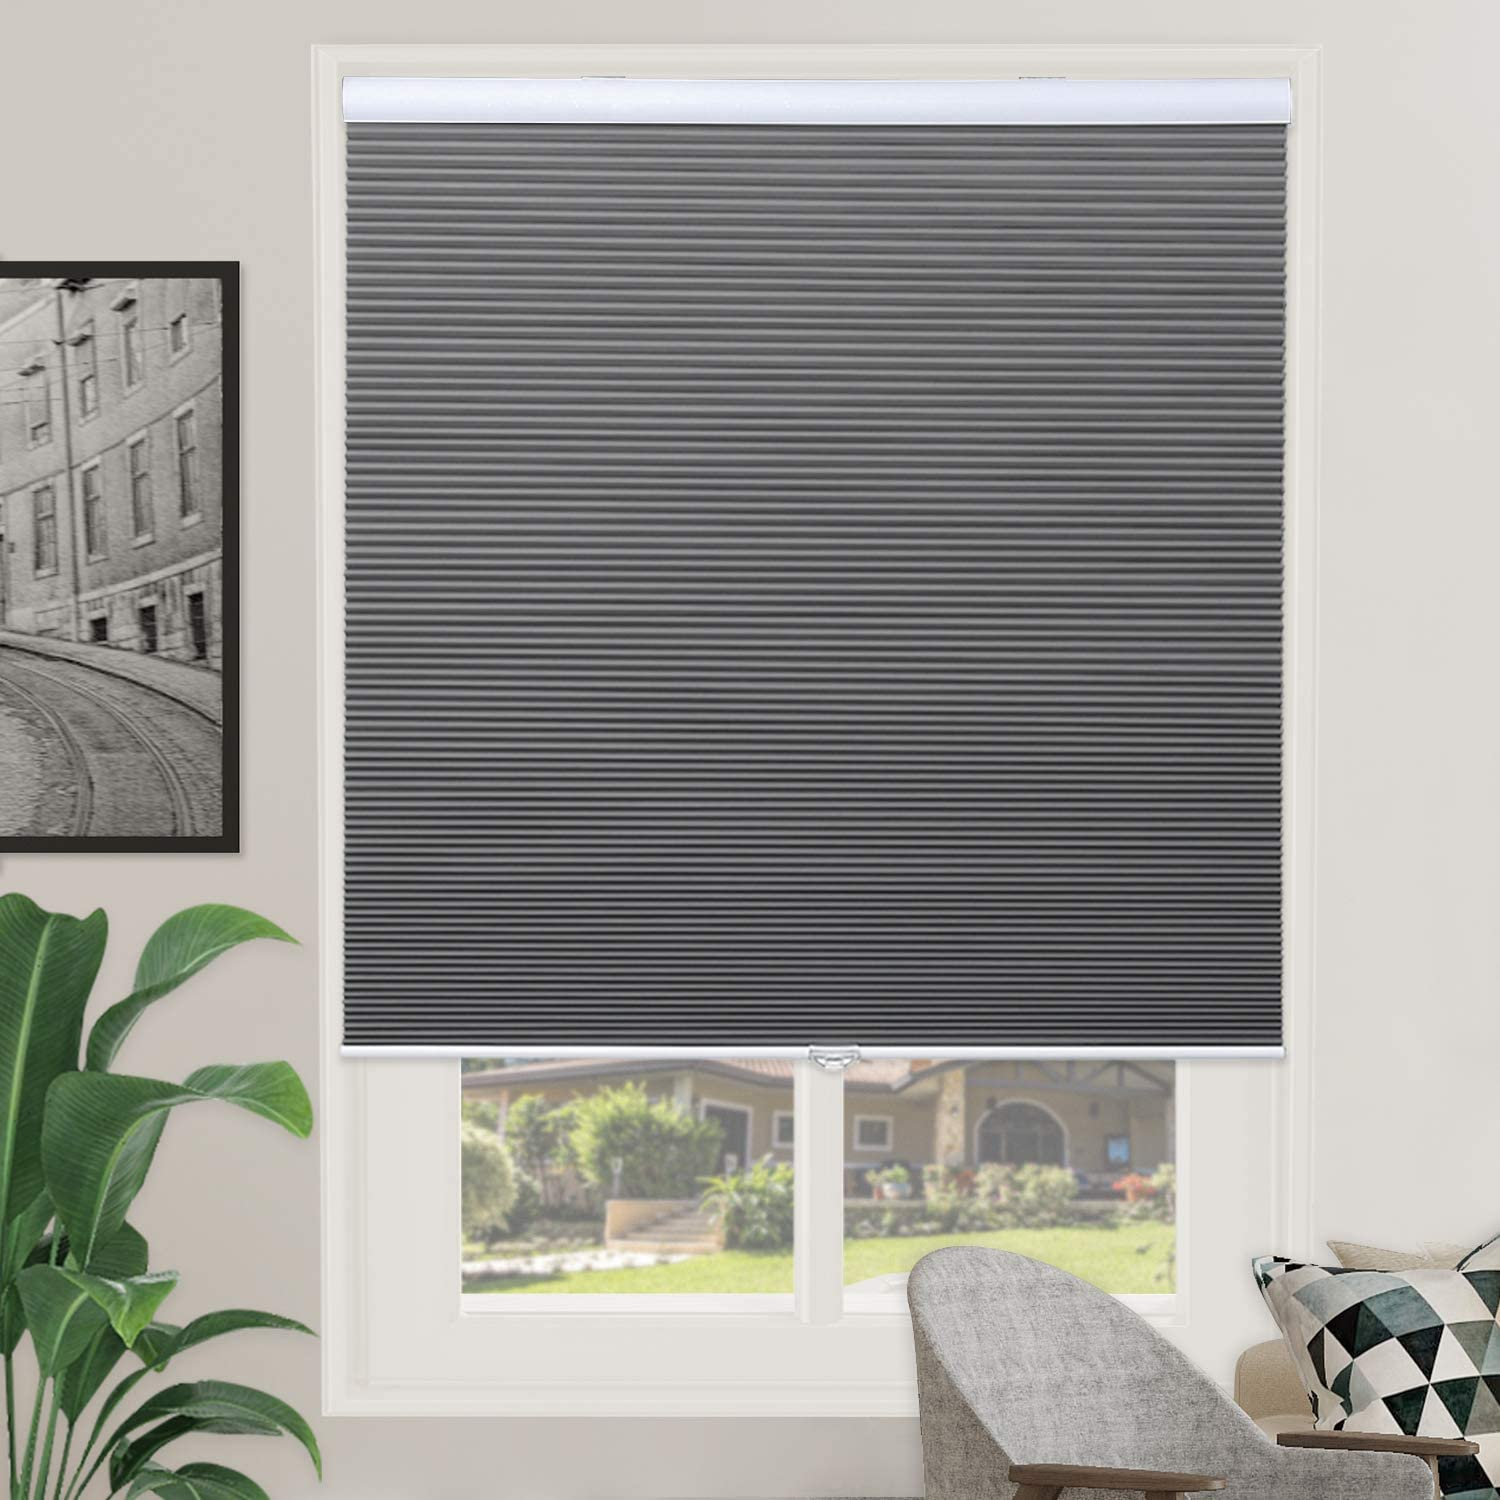 "Blackout Cellular Shades Single Cell Cordless Room Darkening Shade for Windows Bedroom, Thermal and Easy to Pull Down & Up, Gray White, Size: 36"" W x 64"" H"